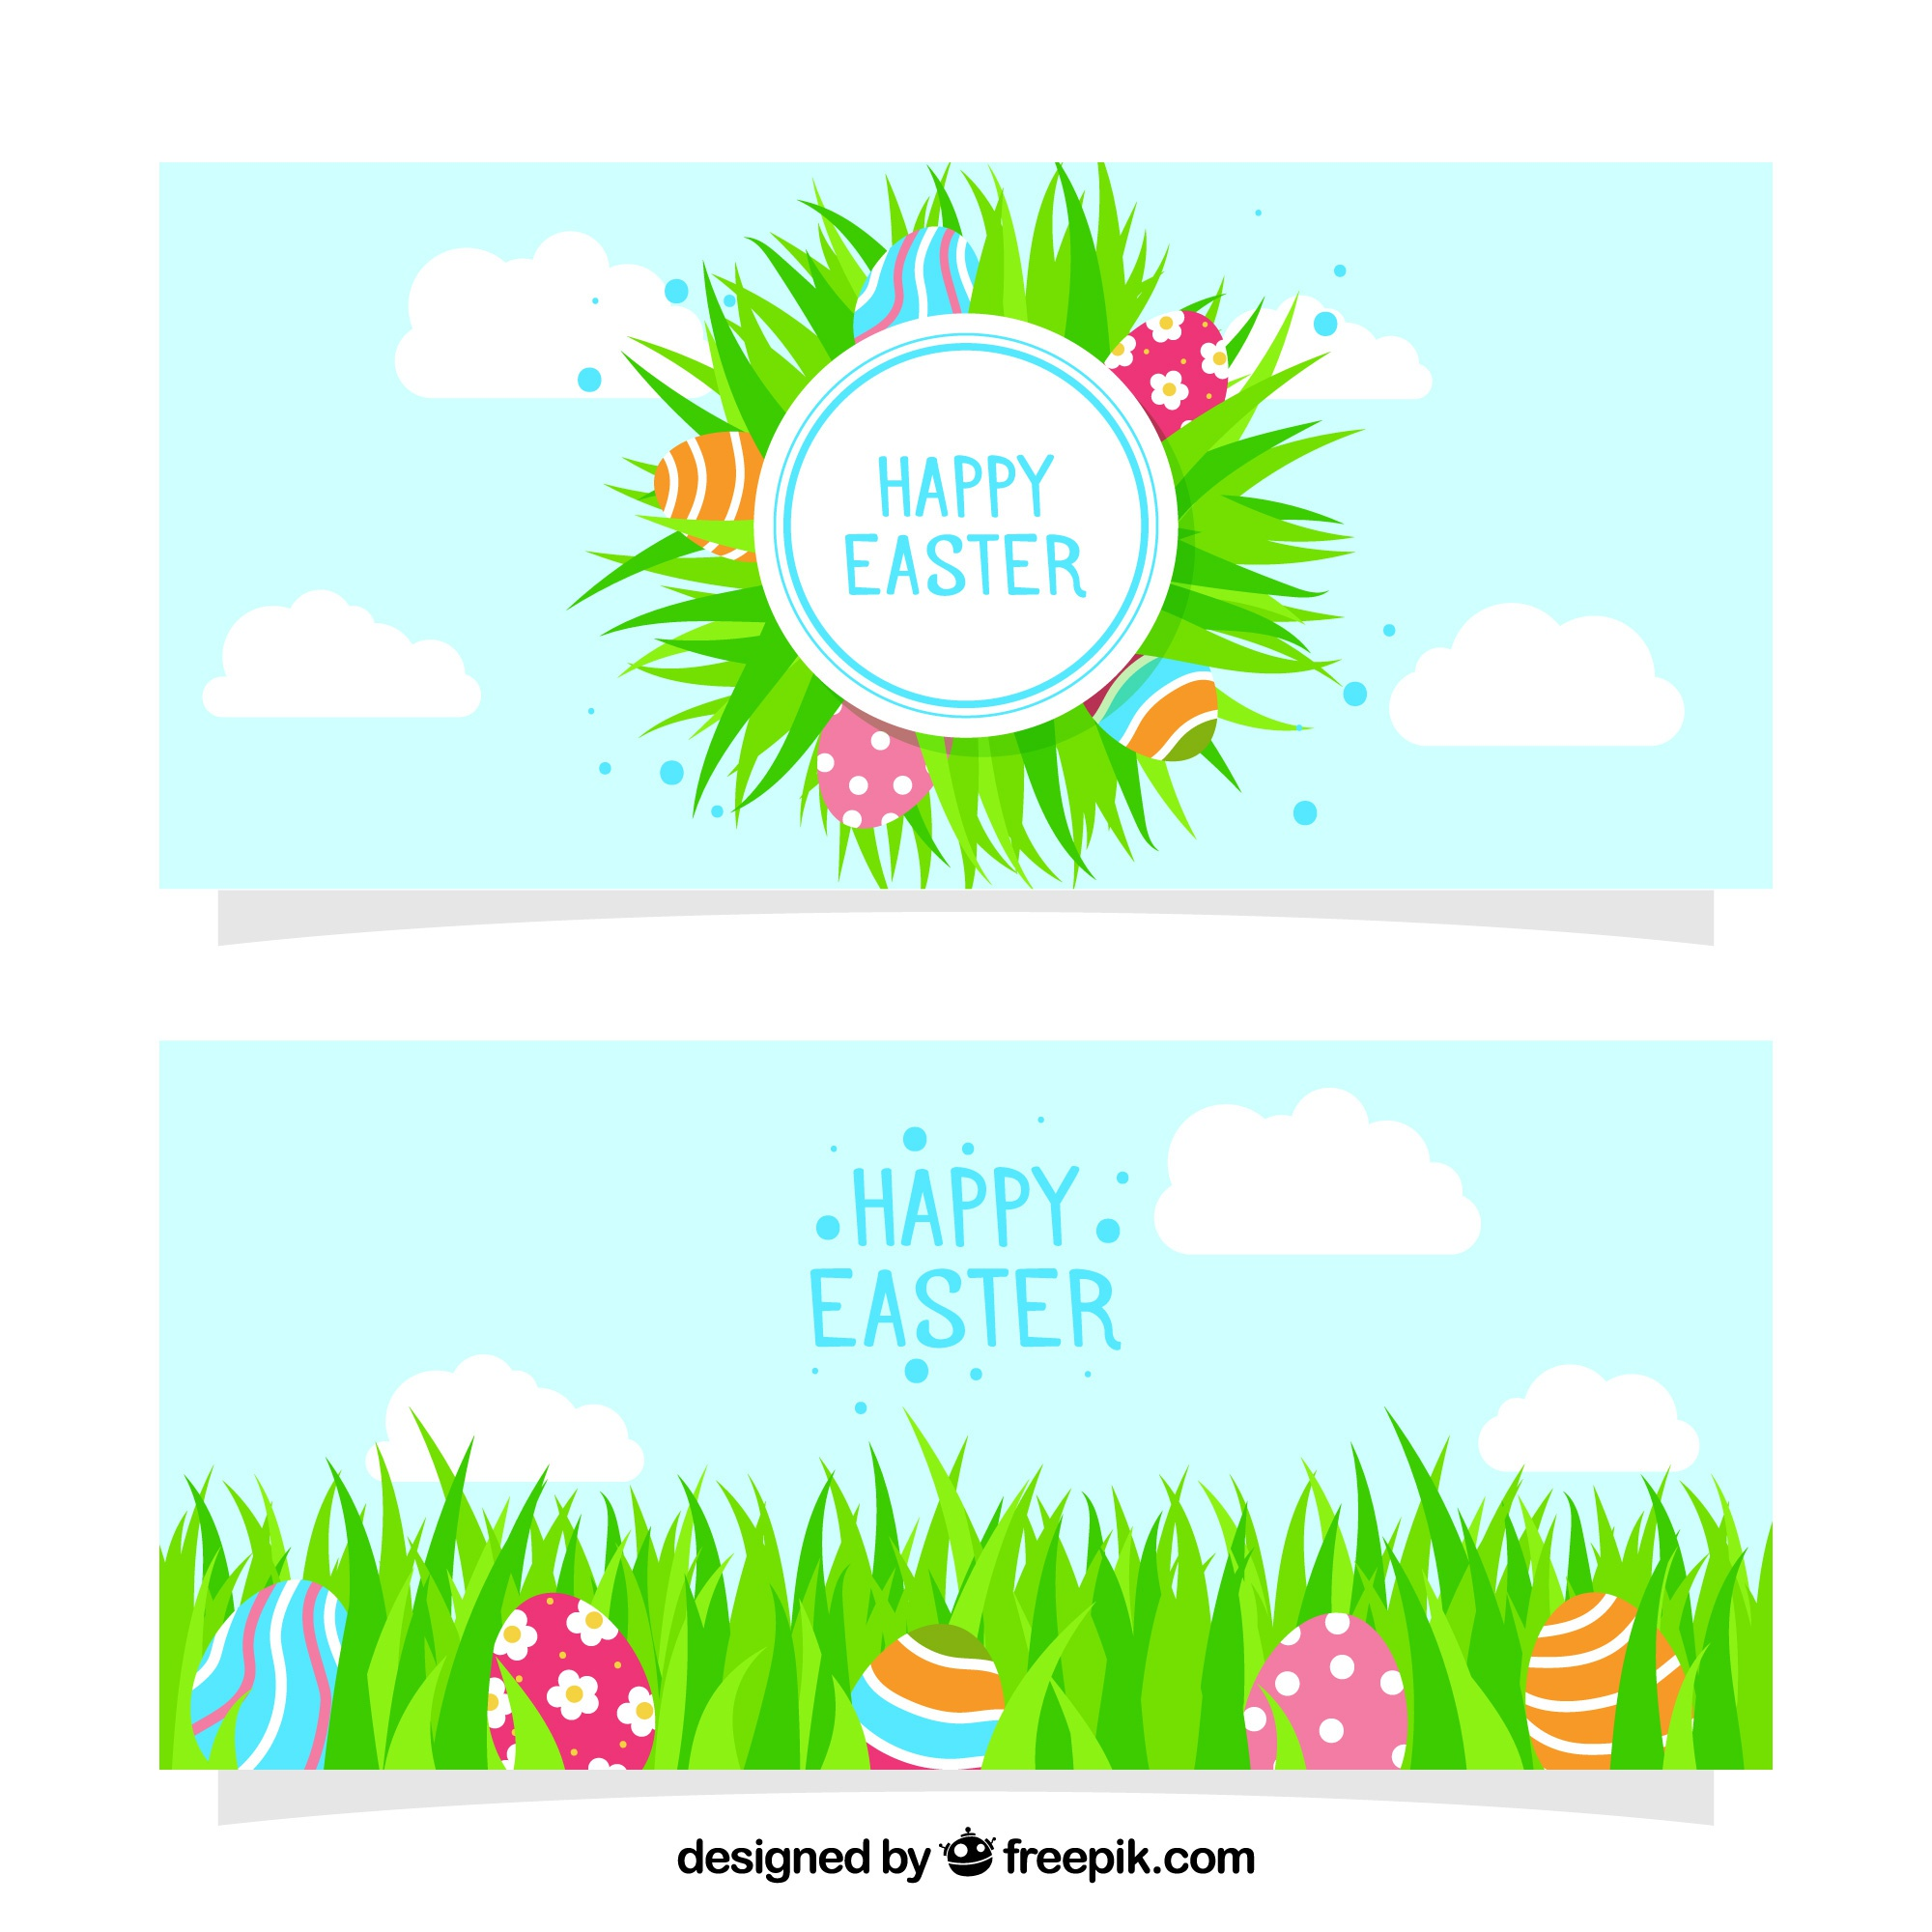 Easter banners with eggs and decorative grass